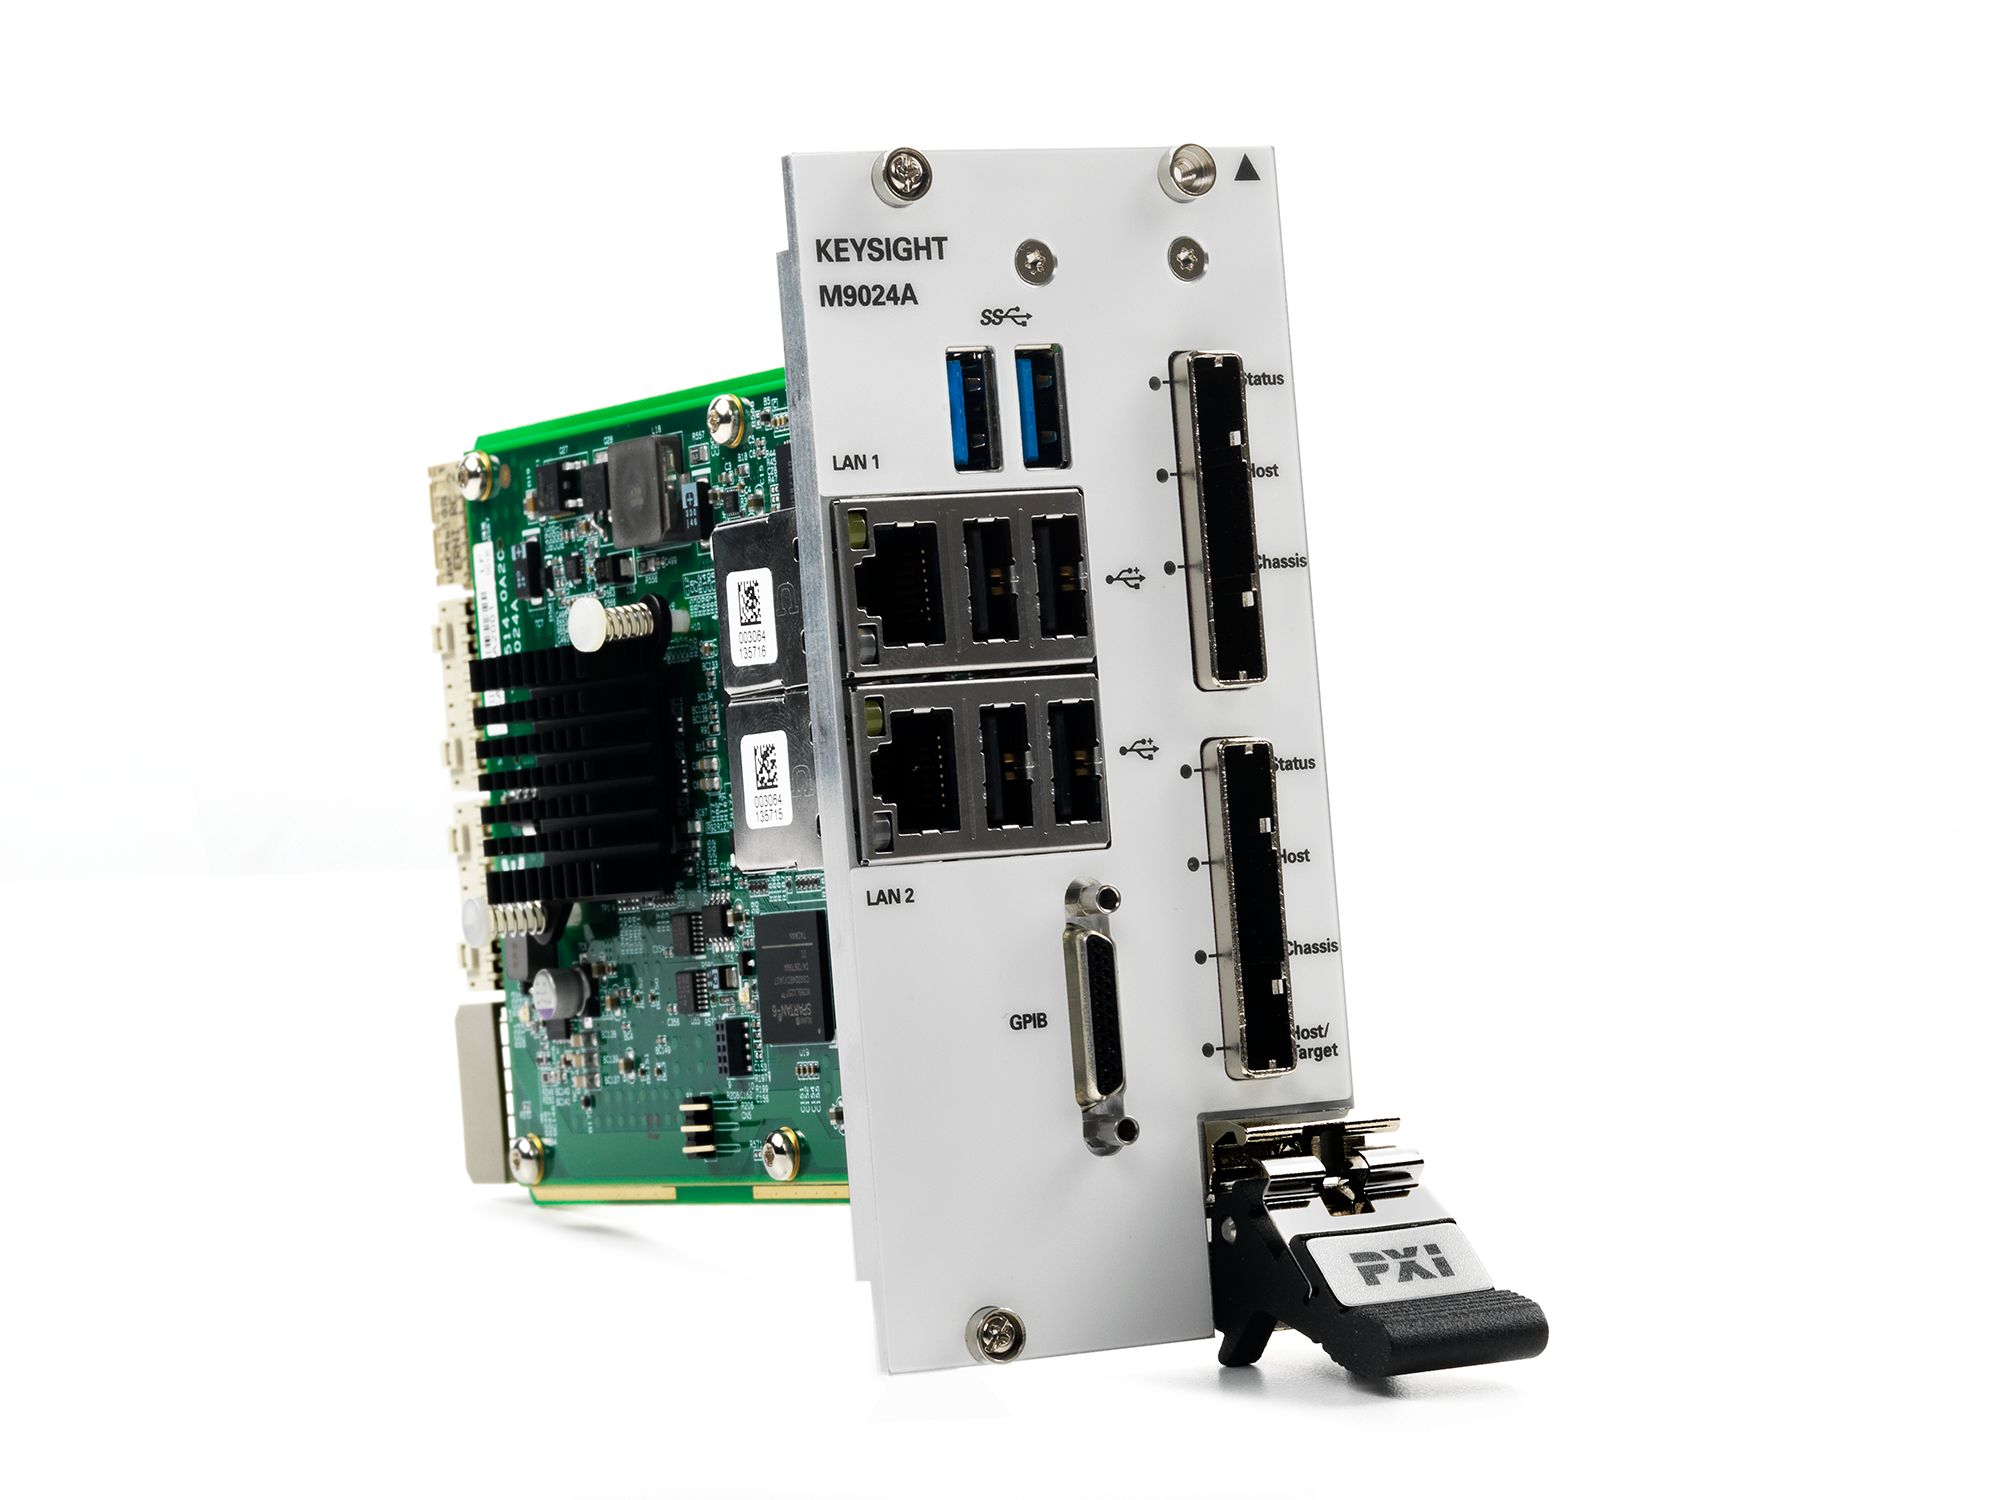 M9024A PXIe High Performance System Module with Connectivity Expansion: Dual Port (x16), Gen 3